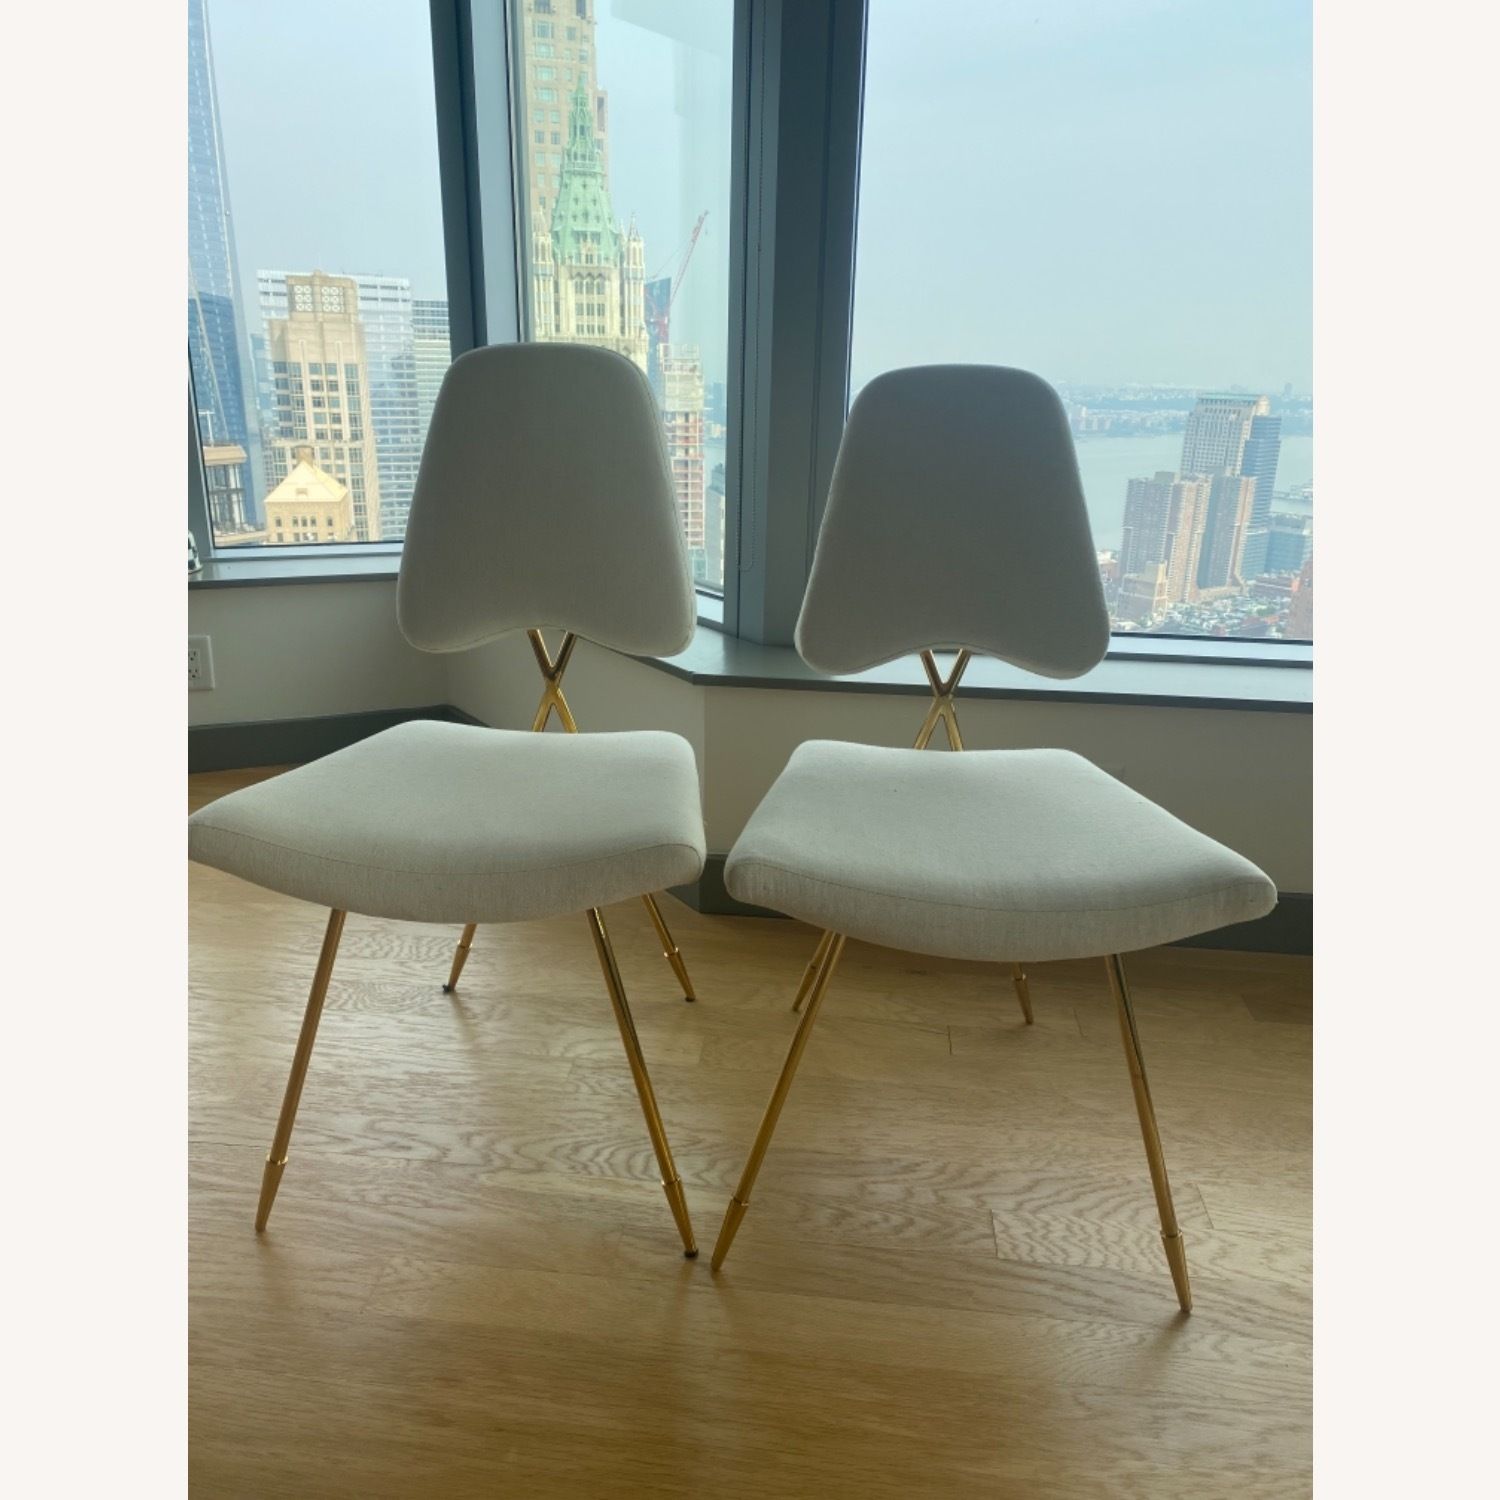 Jonathan Adler Maxime Dining Chairs - image-1